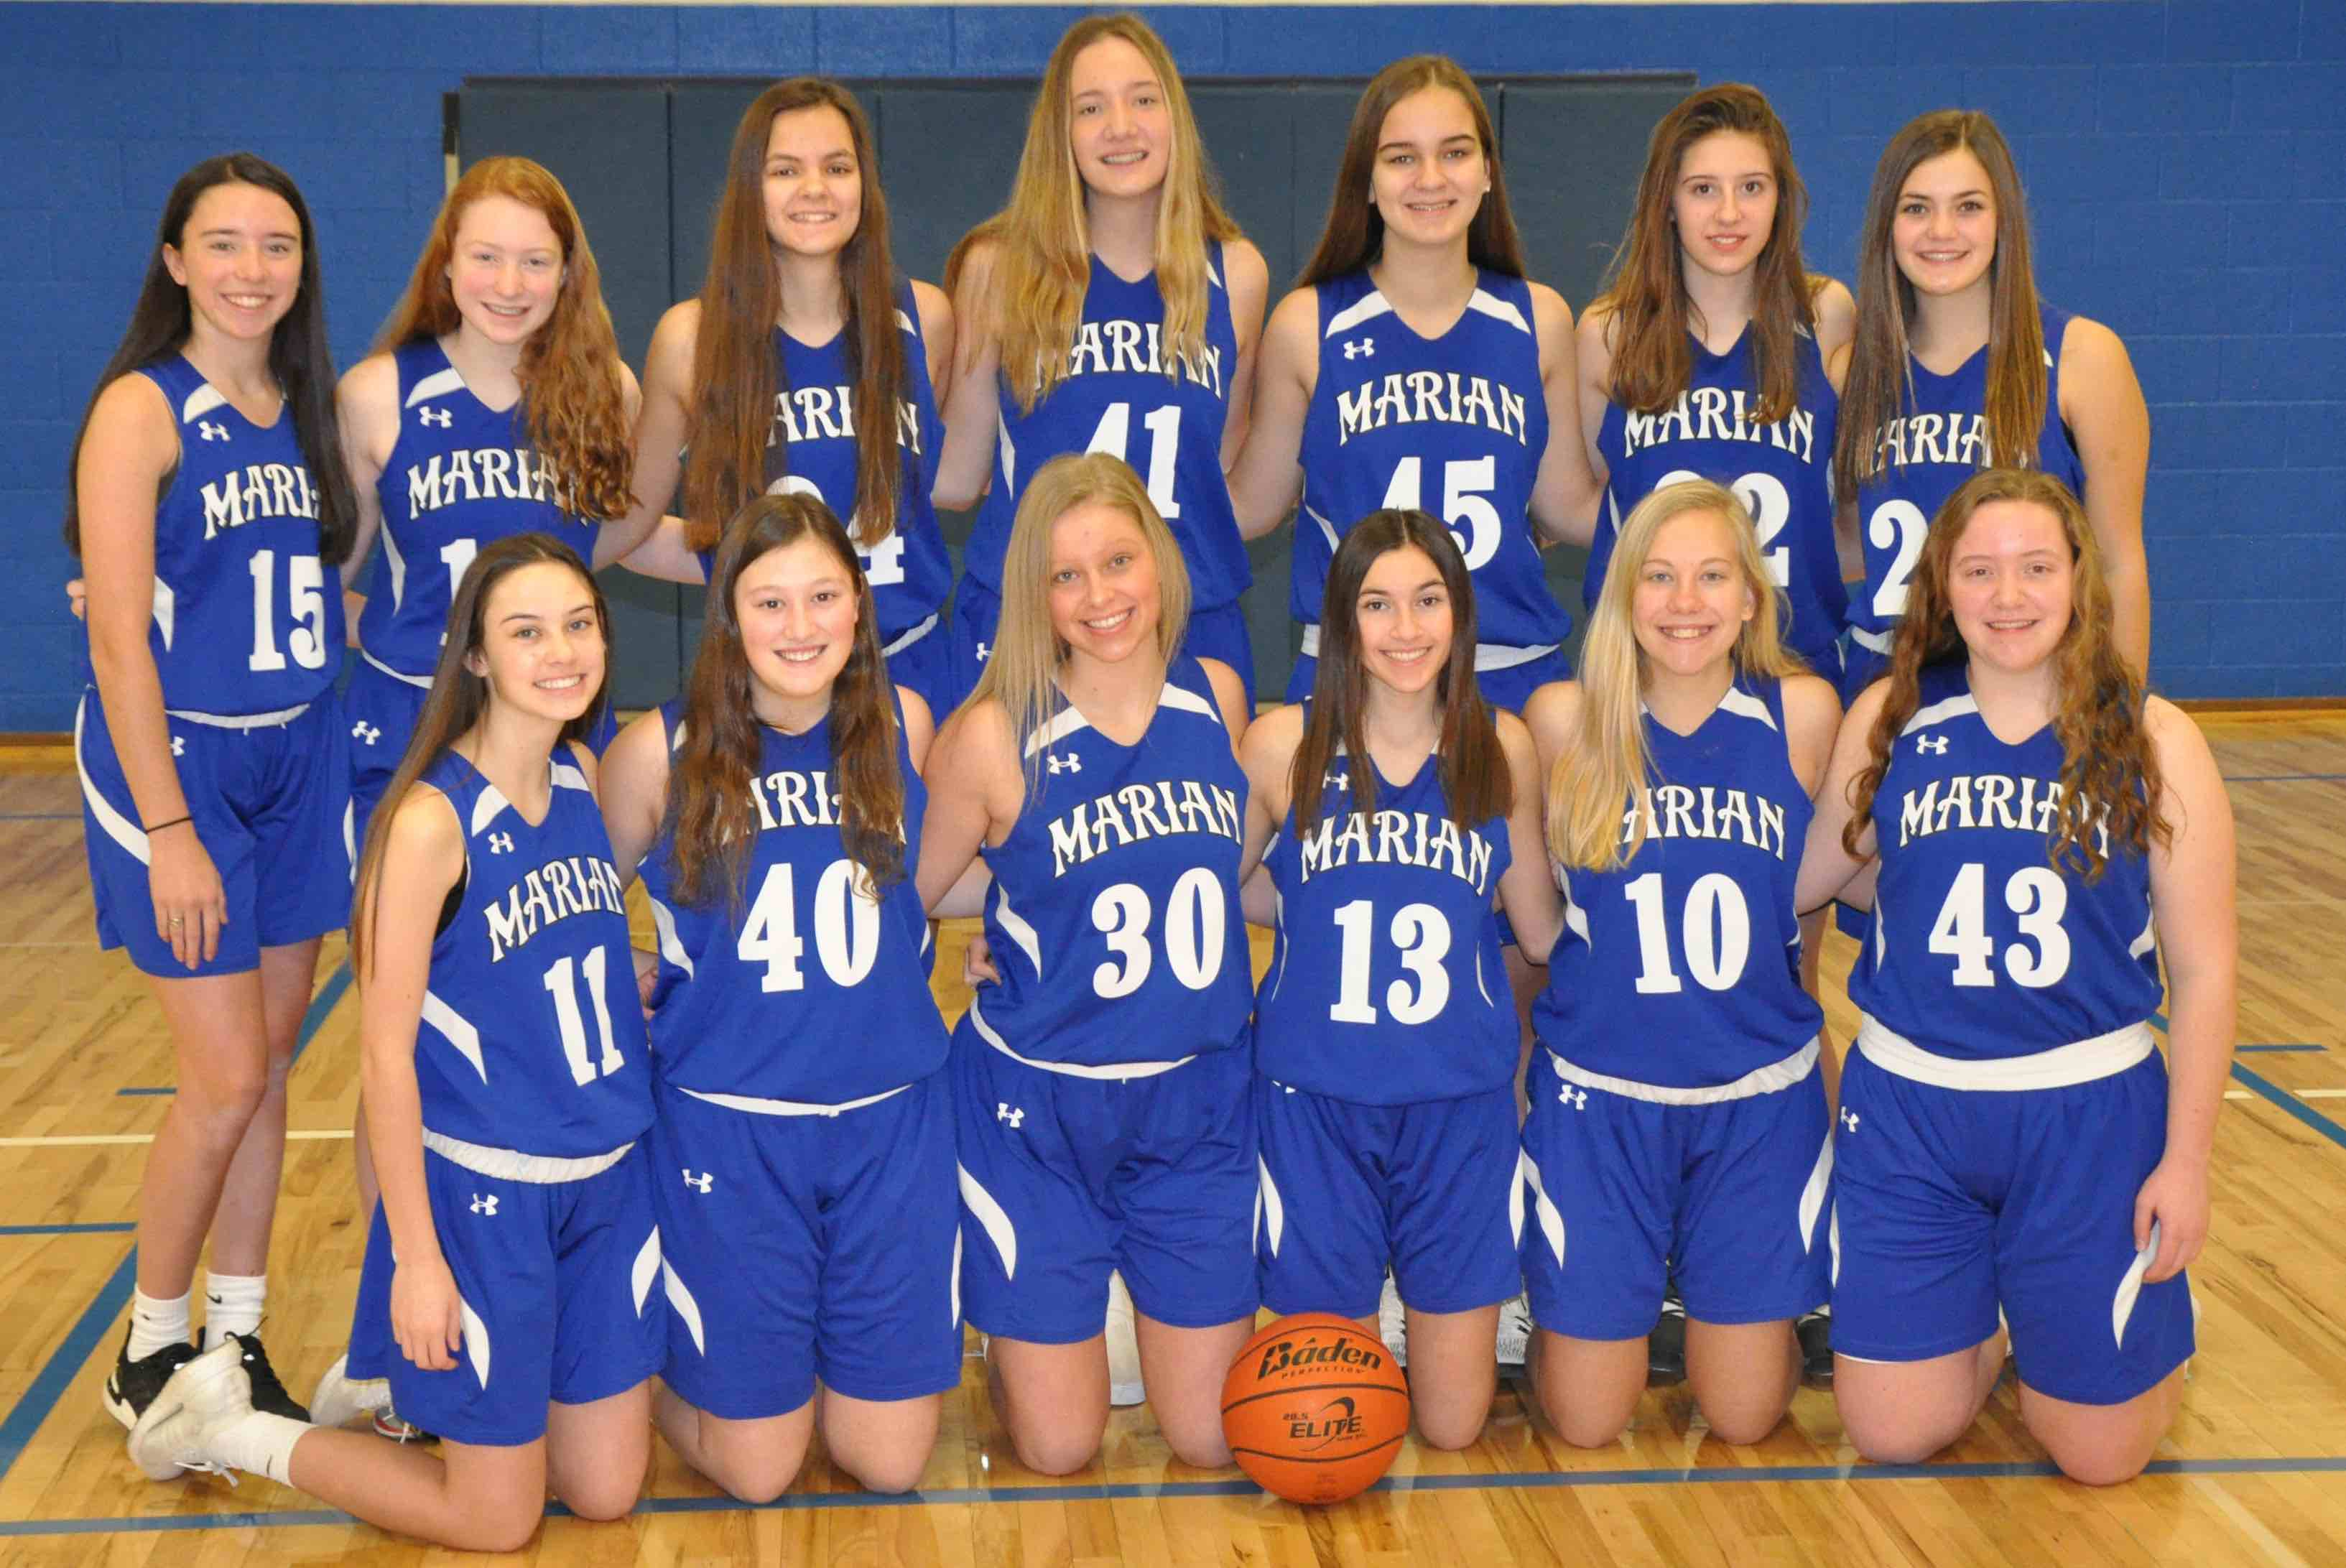 Reserve basketball team in blue jerseys posing for picture in gym